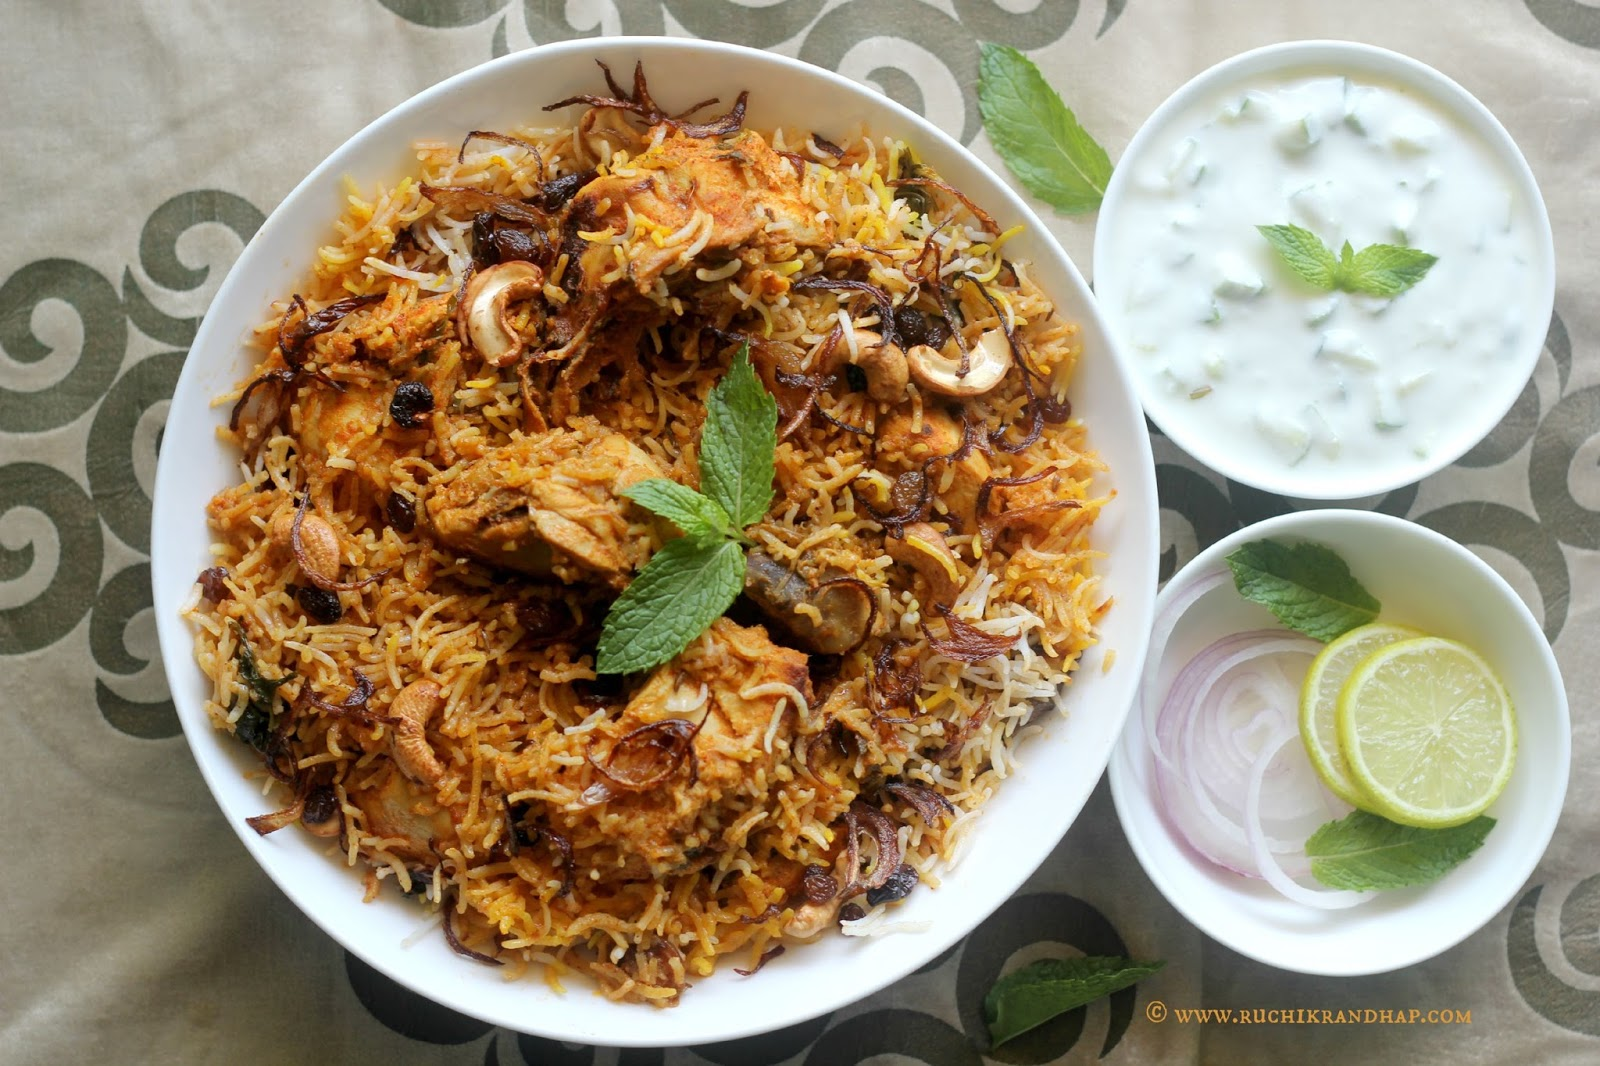 ruchik randhap delicious cooking chicken hyderabadi biryani